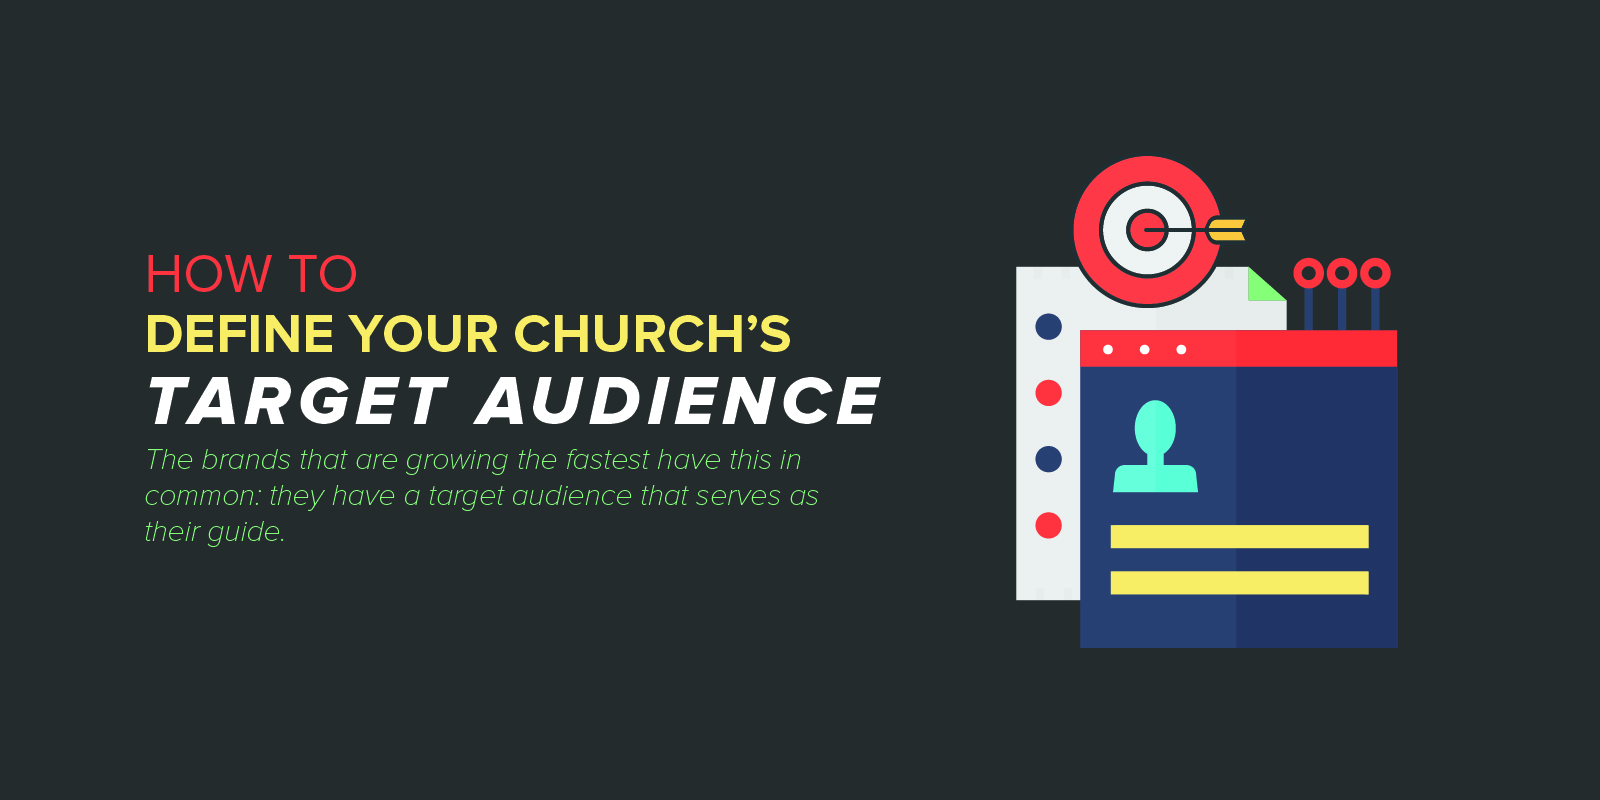 How to Define Your Church's Target Audience